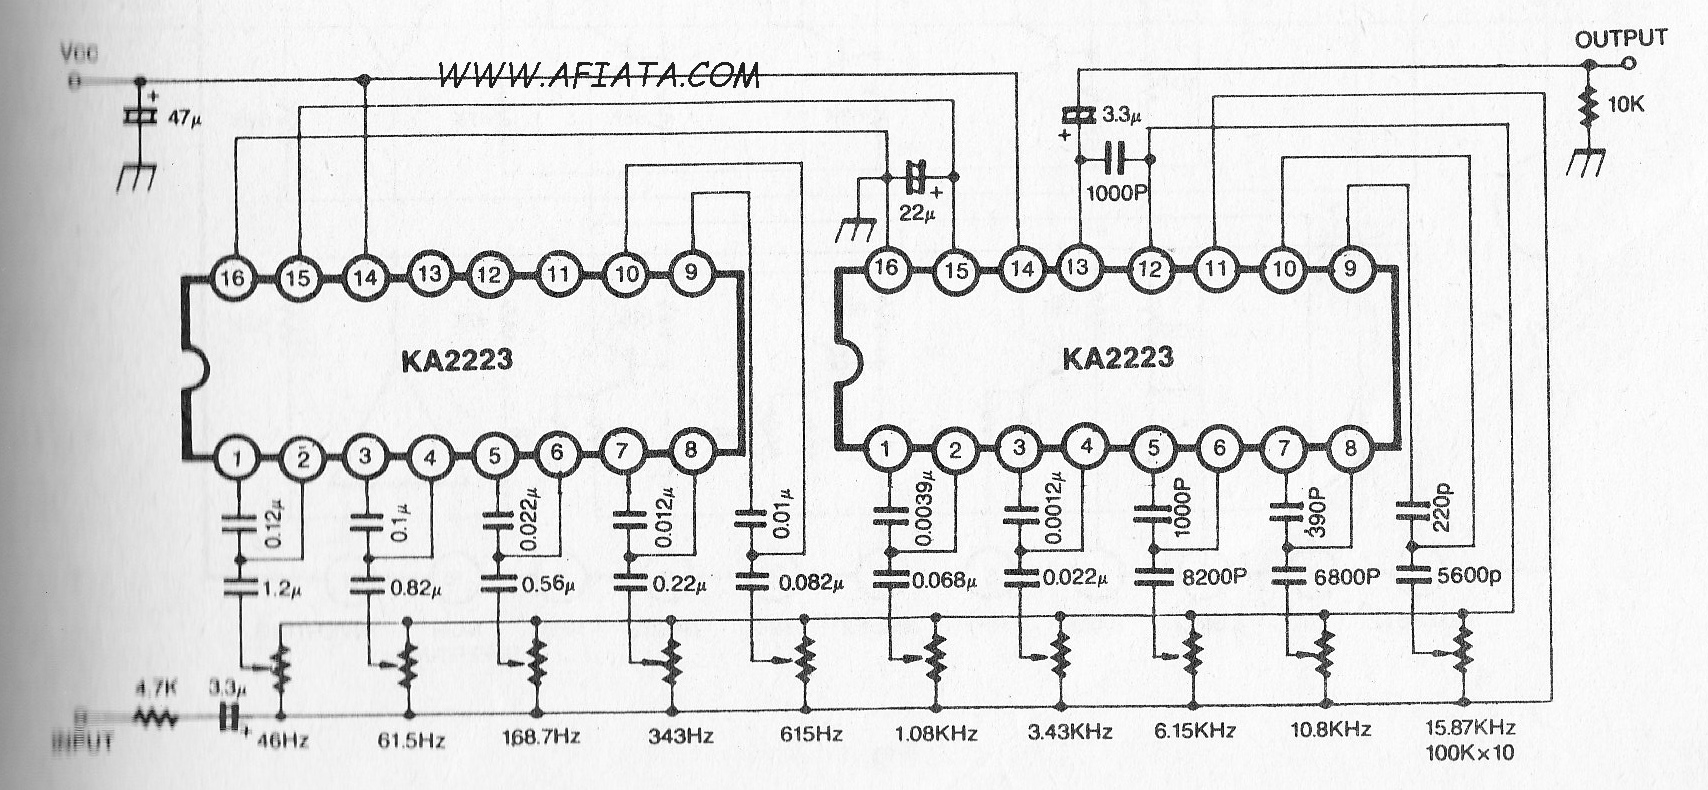 5 Band Audio Graphic Equalizer